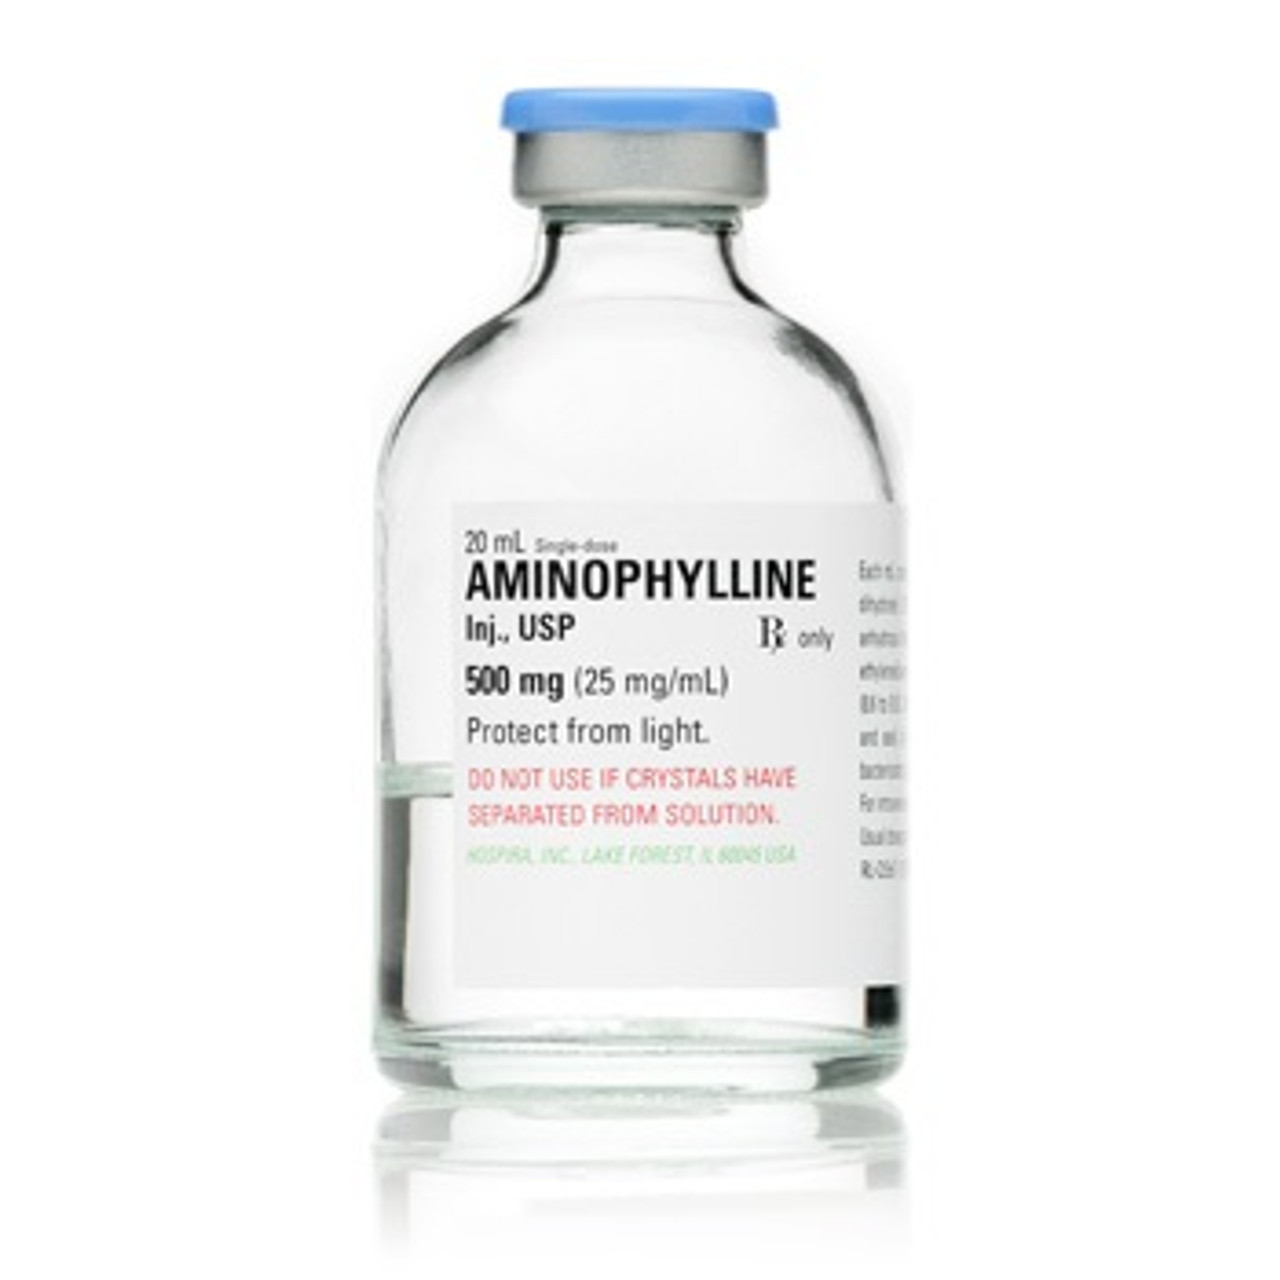 Pfizer 25mg/mL Aminophylline in 20mL Single Dose Ampule